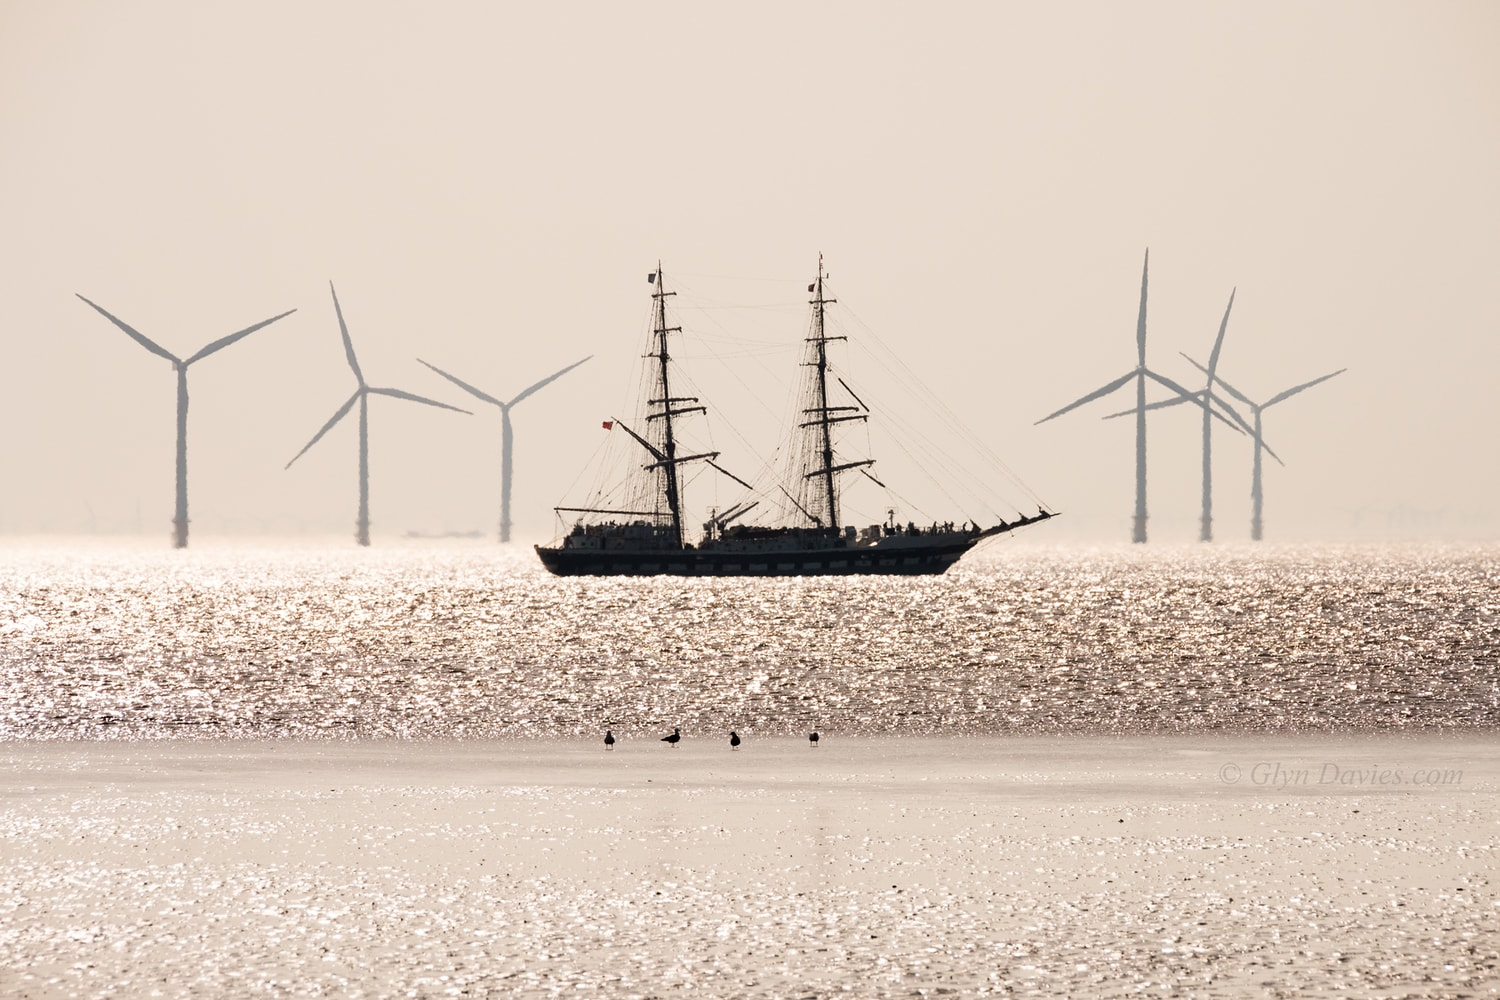 """Windless Motion"" - Distorted by heat haze, a tall ship passes an offshore wind-farm off Crosby Beach, Liverpool -  Fujifilm X-Pro2"